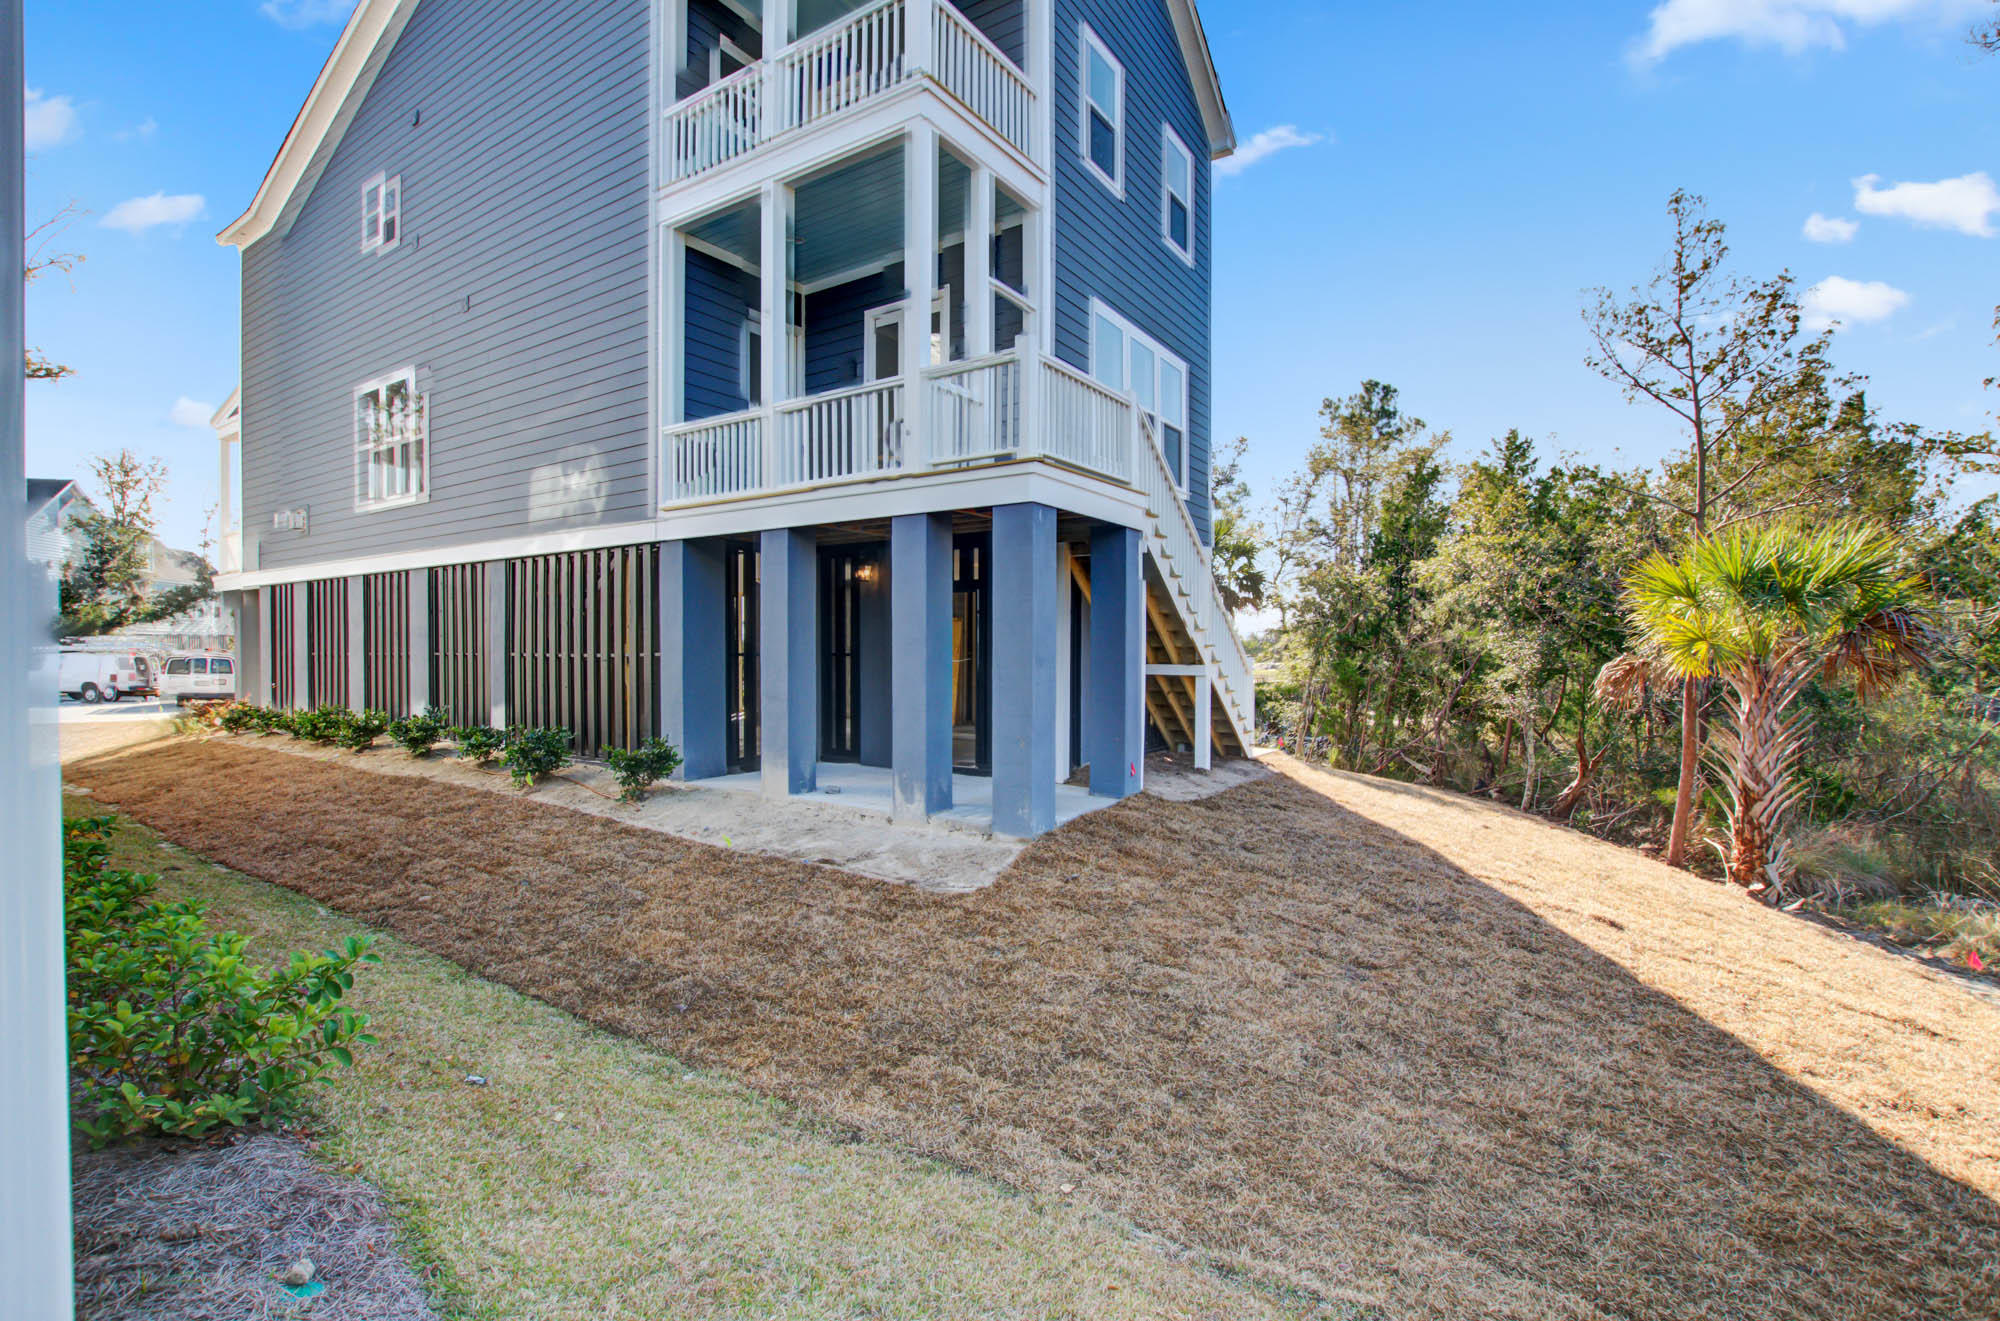 Stratton by the Sound Homes For Sale - 1541 Menhaden, Mount Pleasant, SC - 53